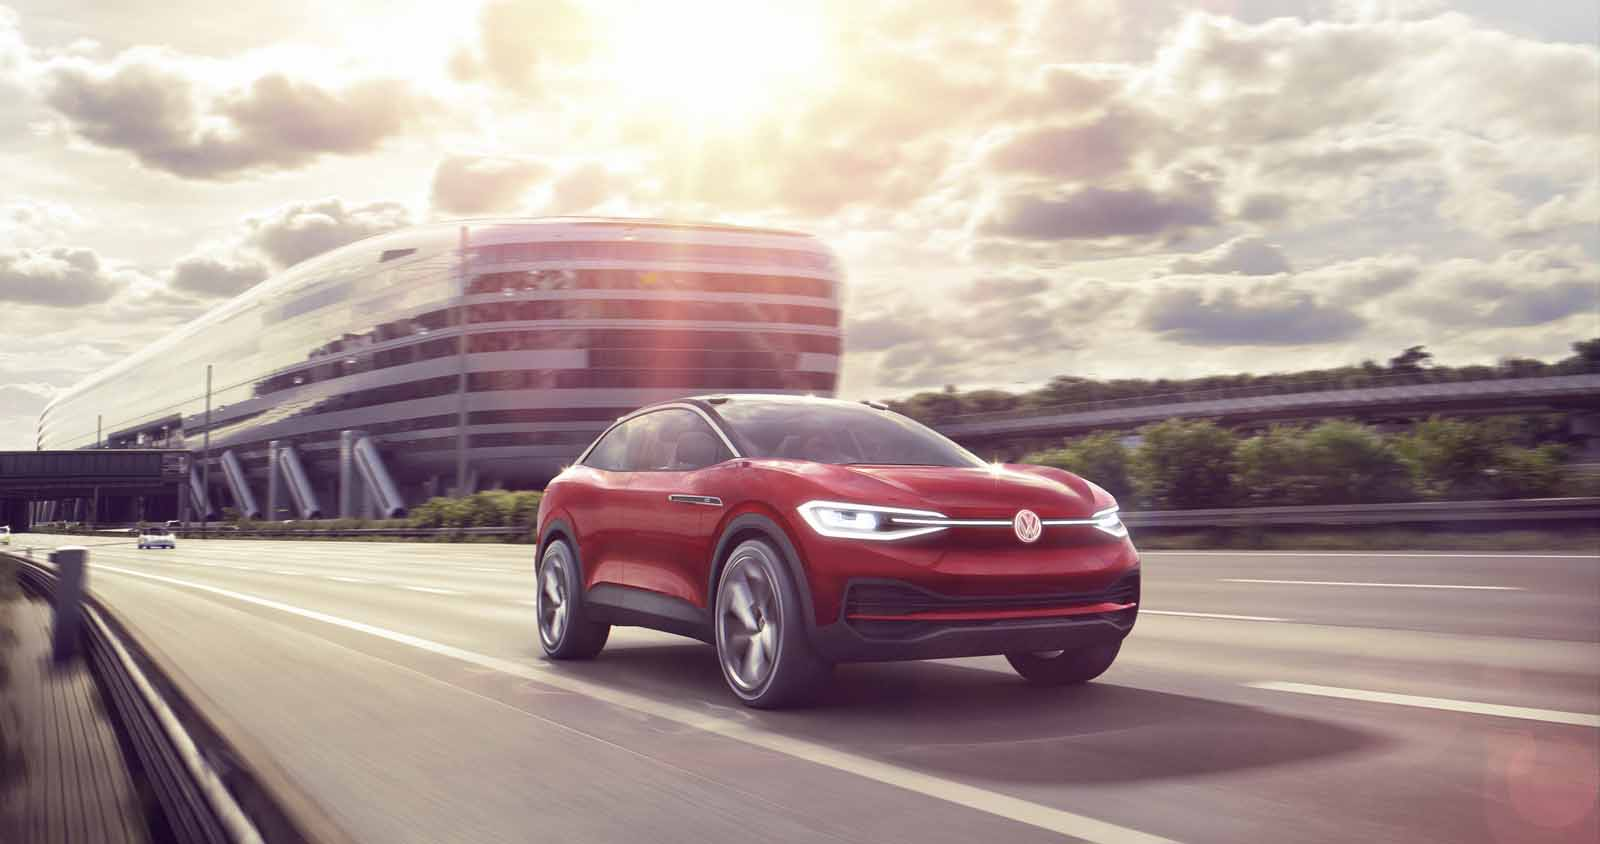 Vw Of America >> Vw Of America Confirms Electric Suv Launch In 2020